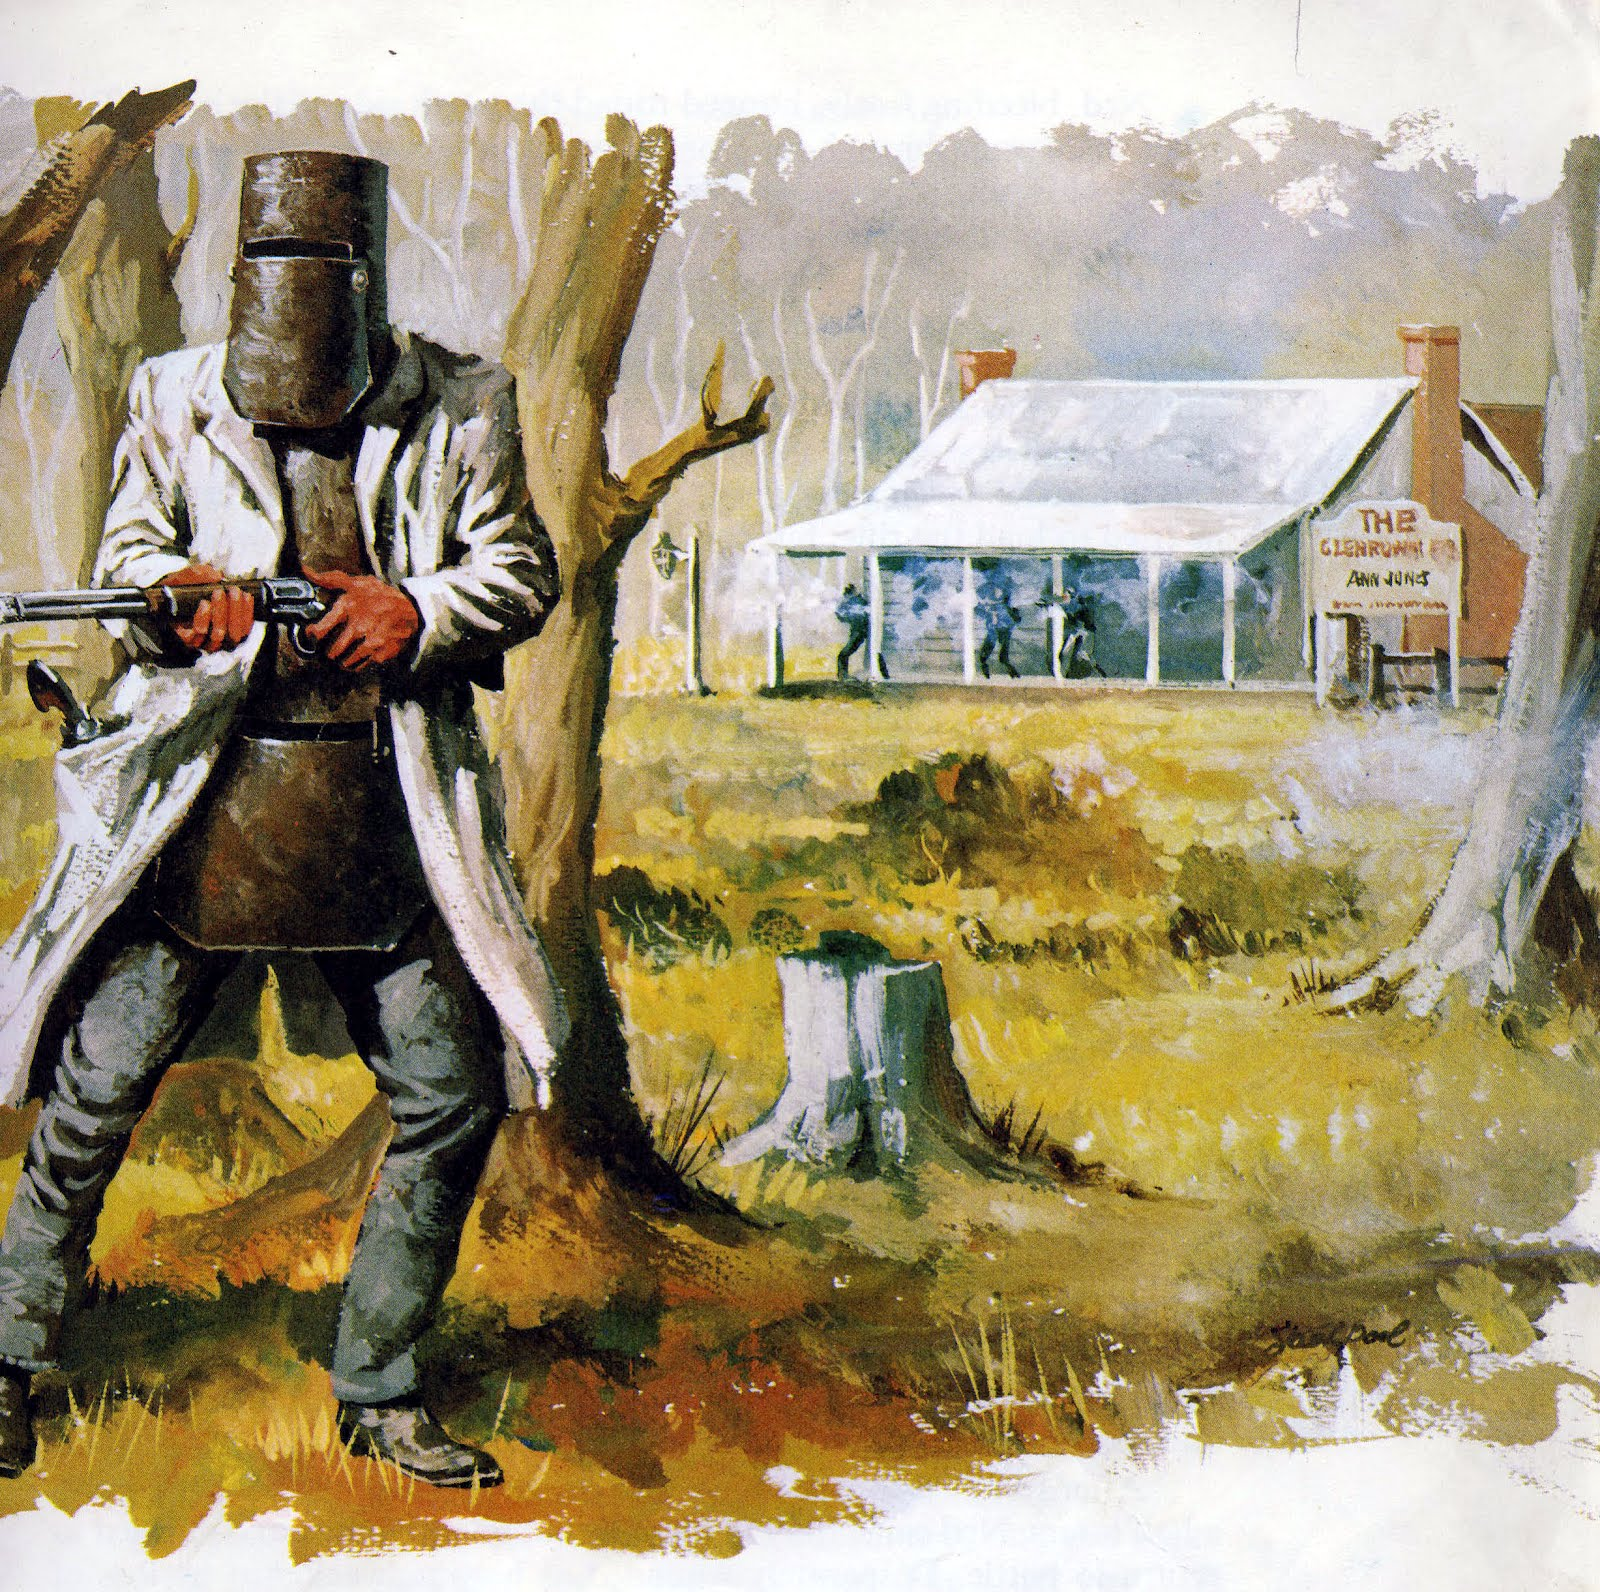 ned kelly essay ned kelly essay gcse english marked by teachers ned kelly hero or villain essaya peaceful day poor ned kelly in unlikely ways and from